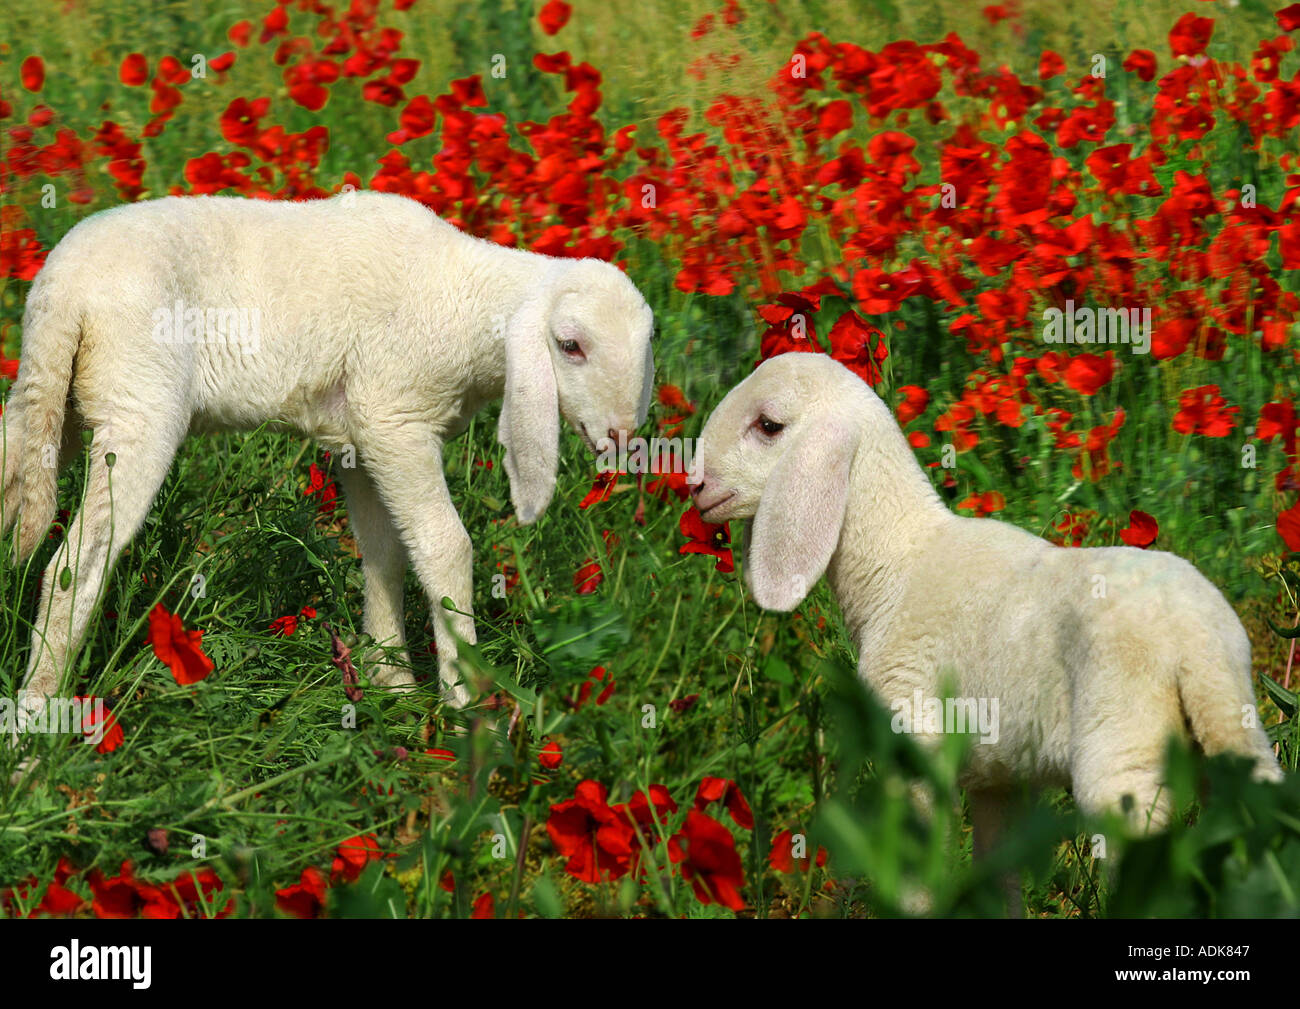 sheep - two lambs on meadow with poppies / Ovis Aries Stock Photo